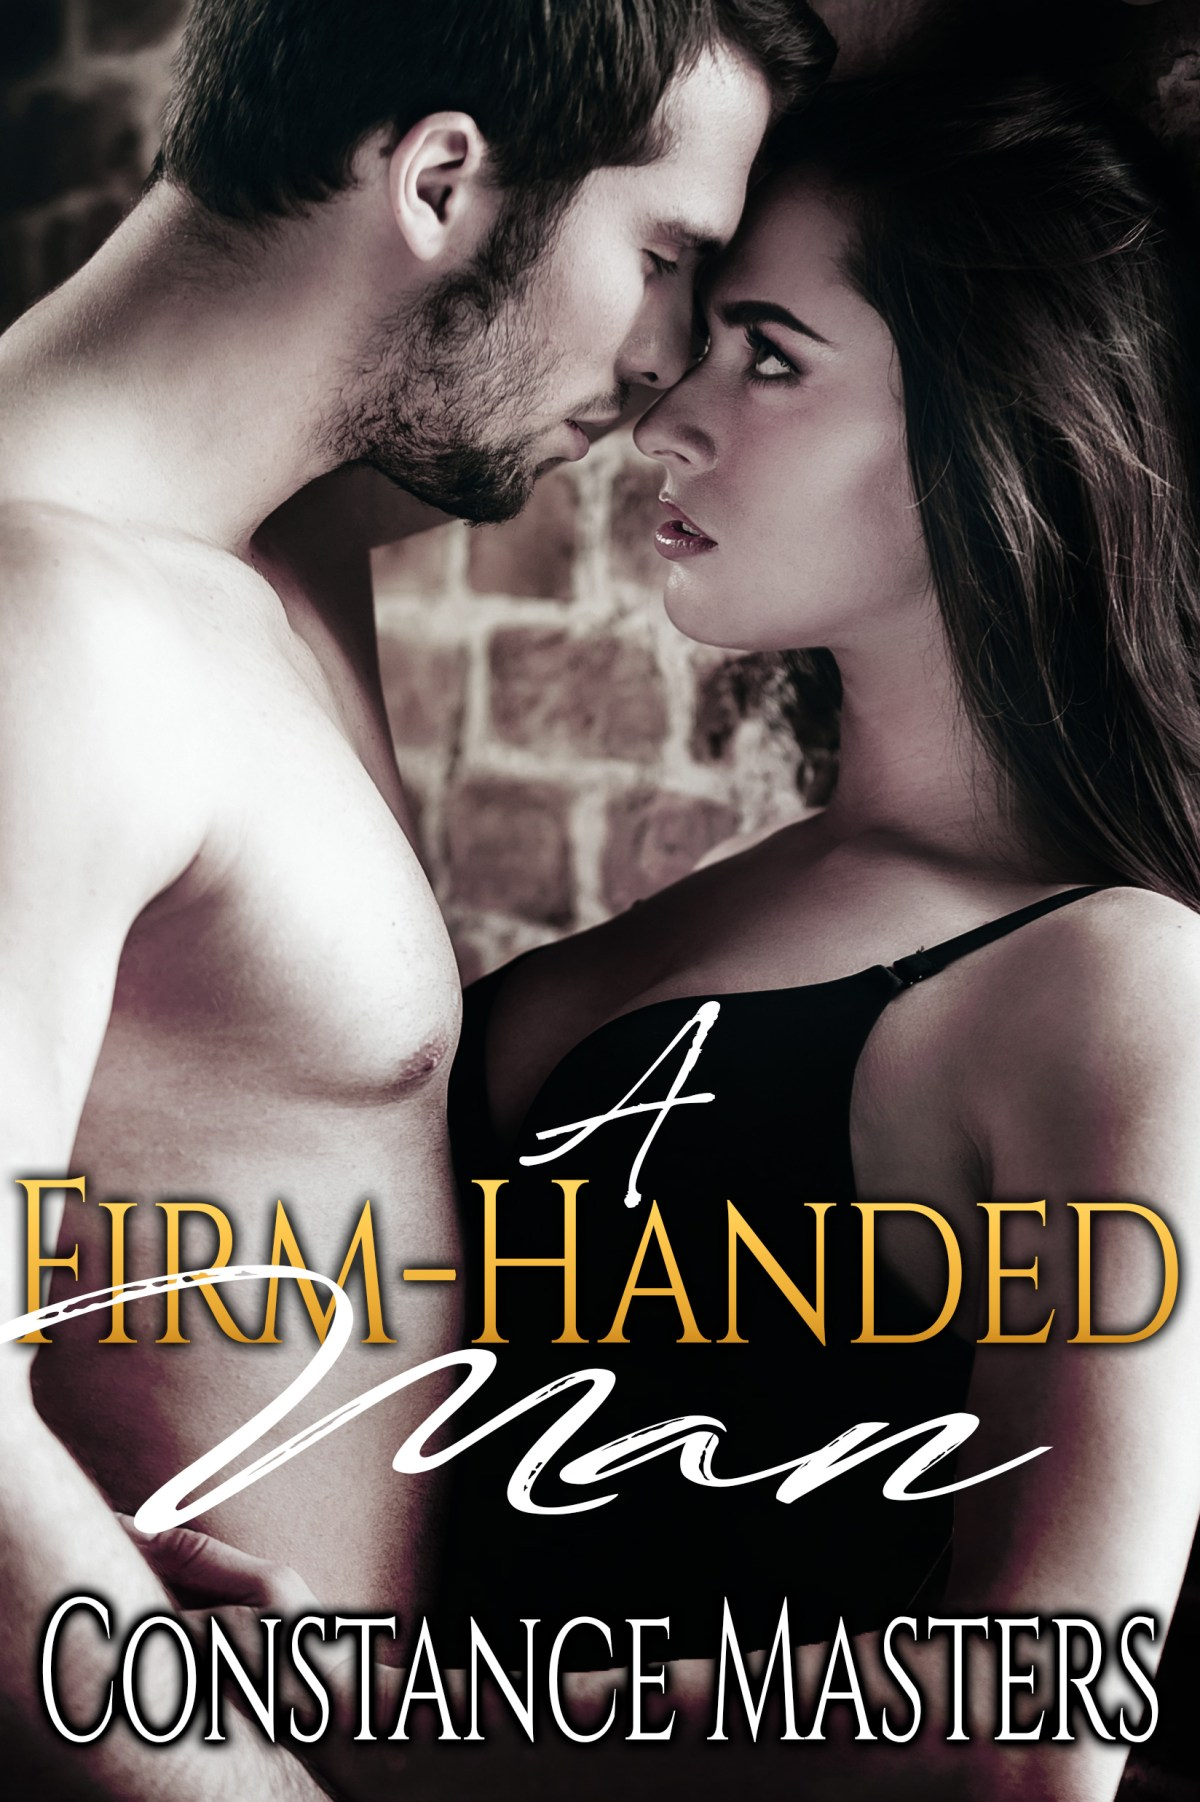 A Firm-Handed Man